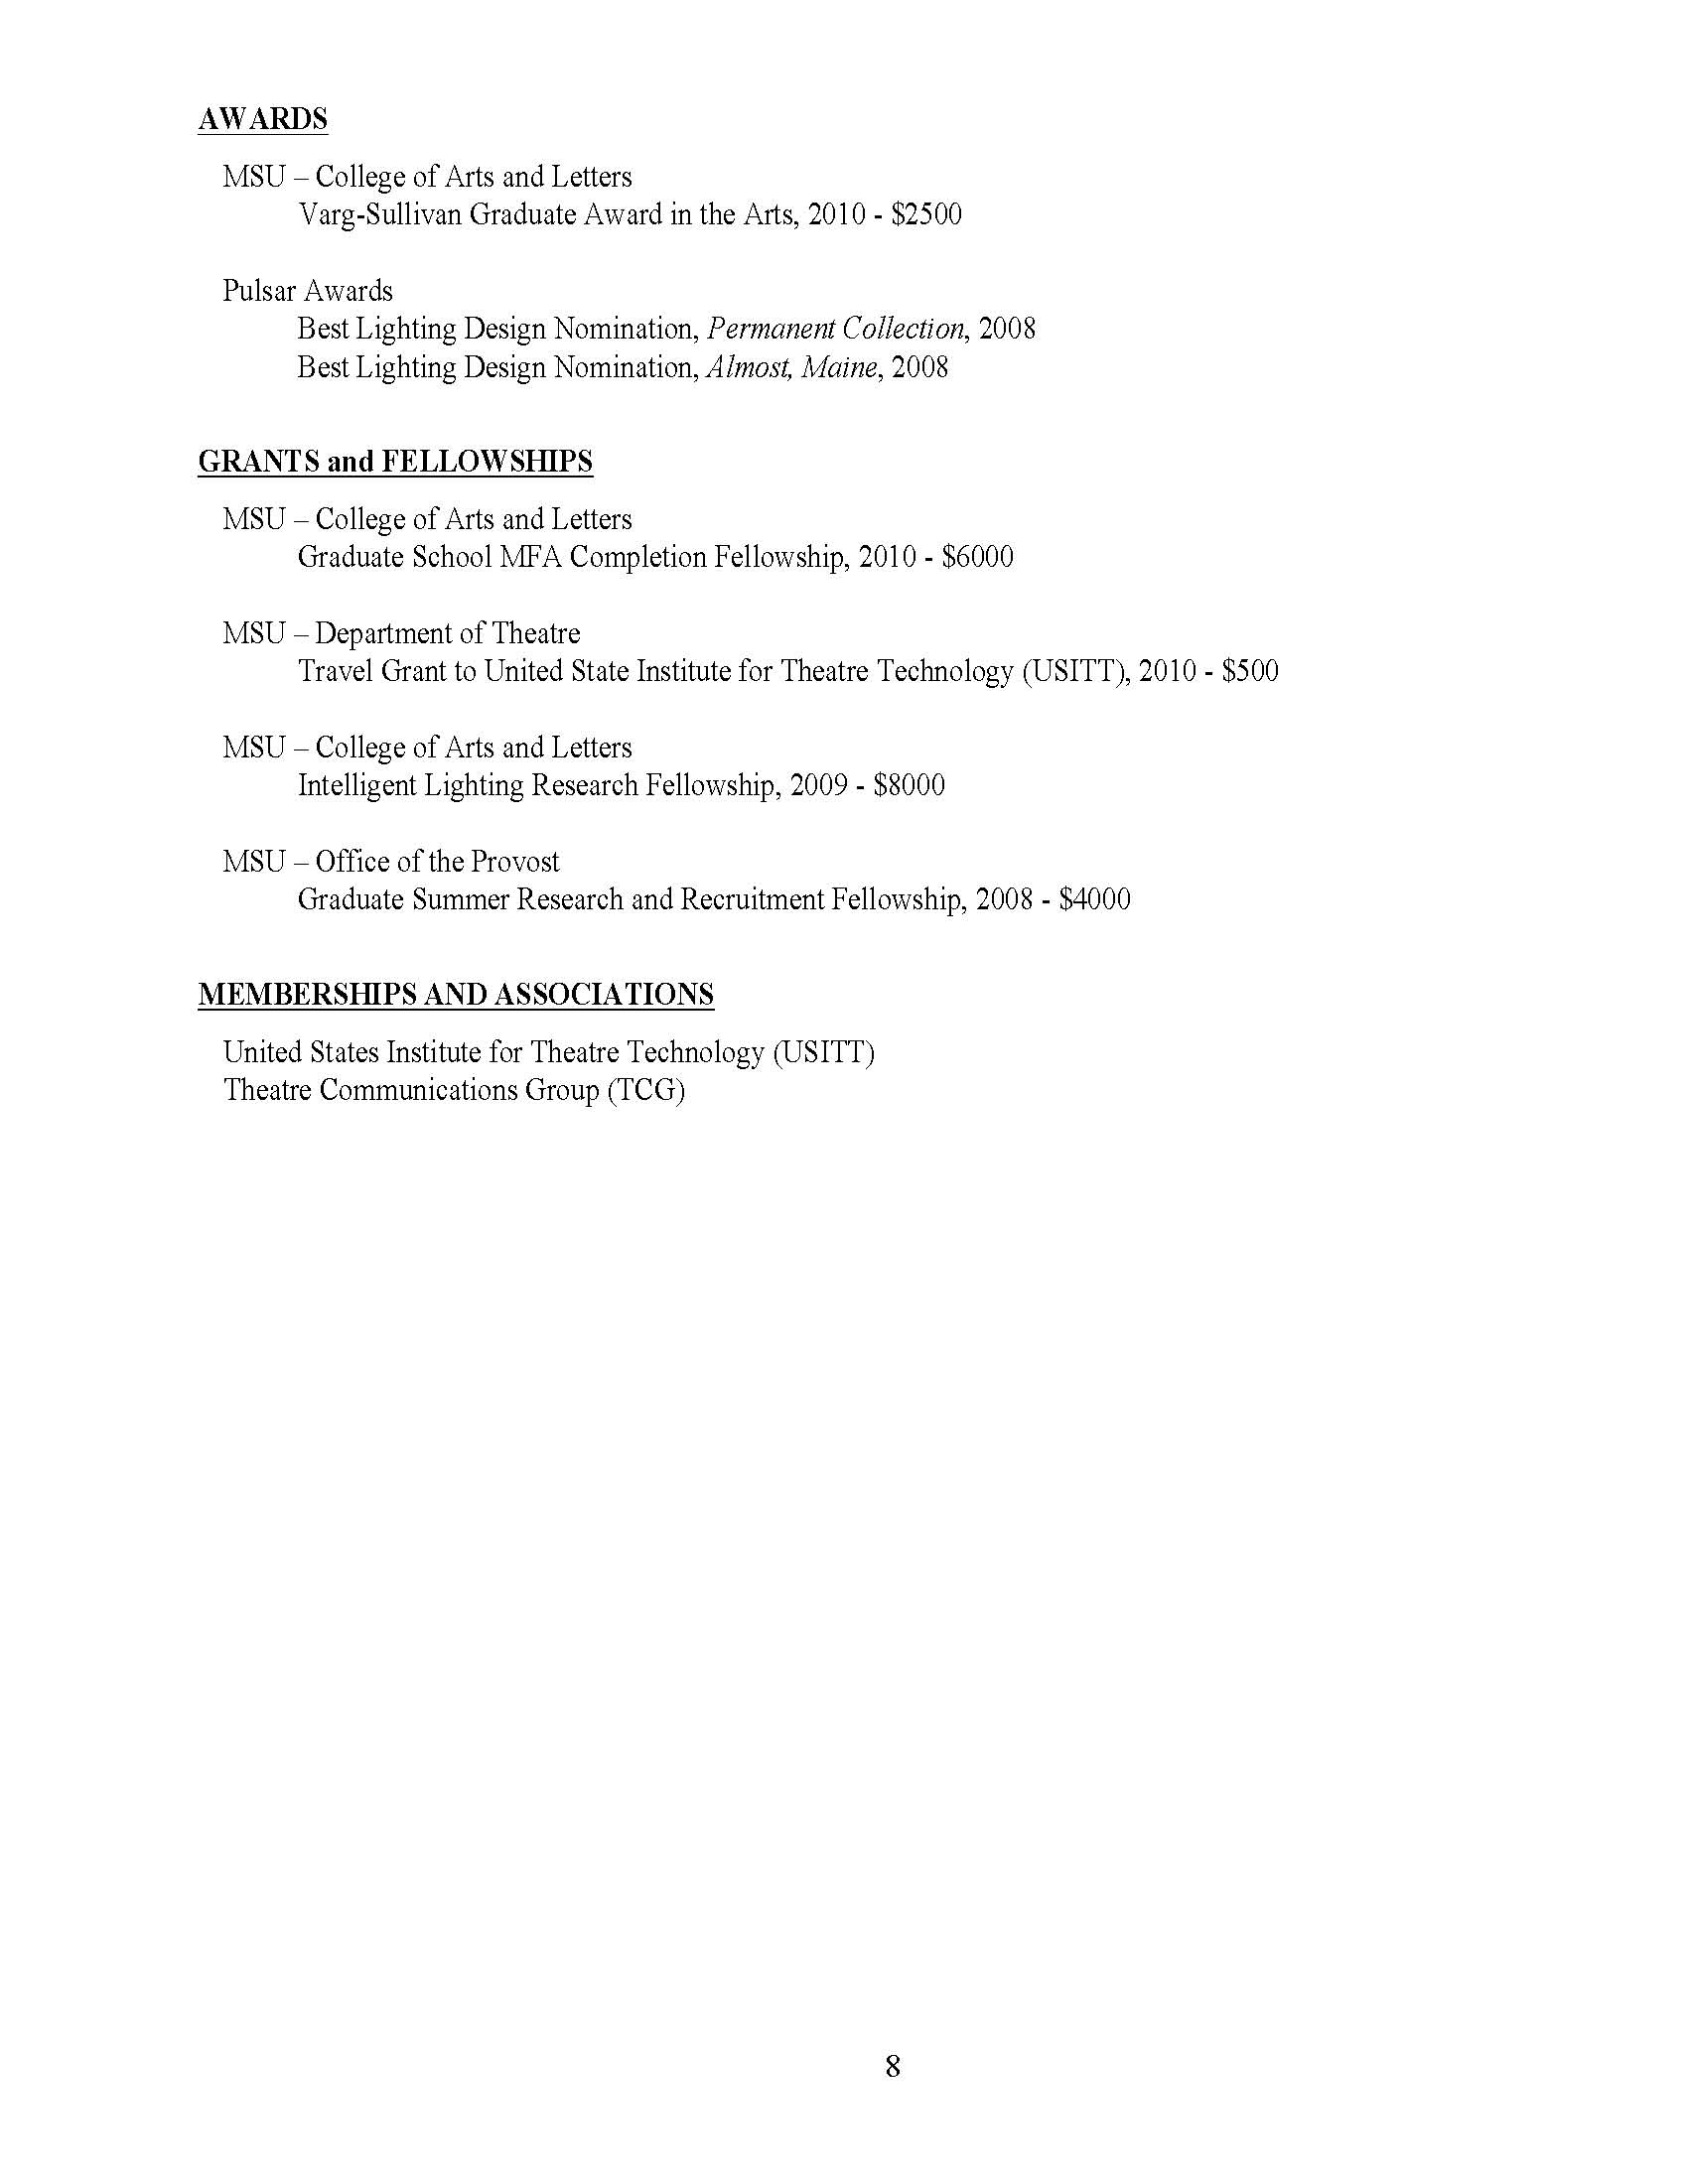 resume builder msu example resume and cover